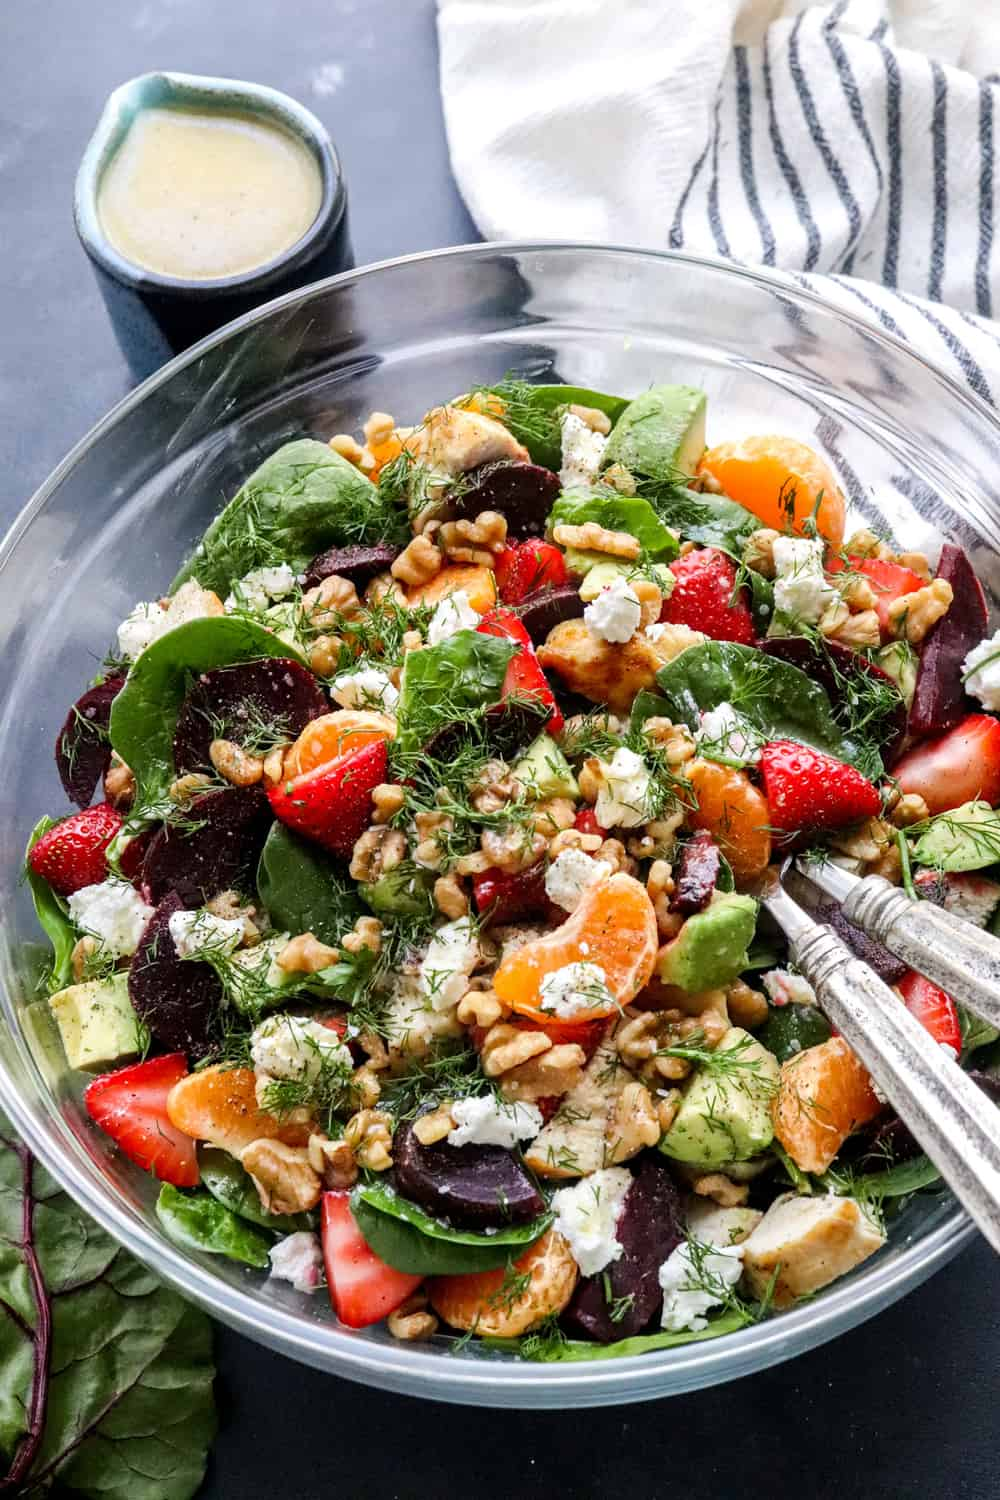 Round bowl filled with veggies and fruits topped with chicken and soft cheese and herbs with a metal serving spoon sticking out of the bowl.